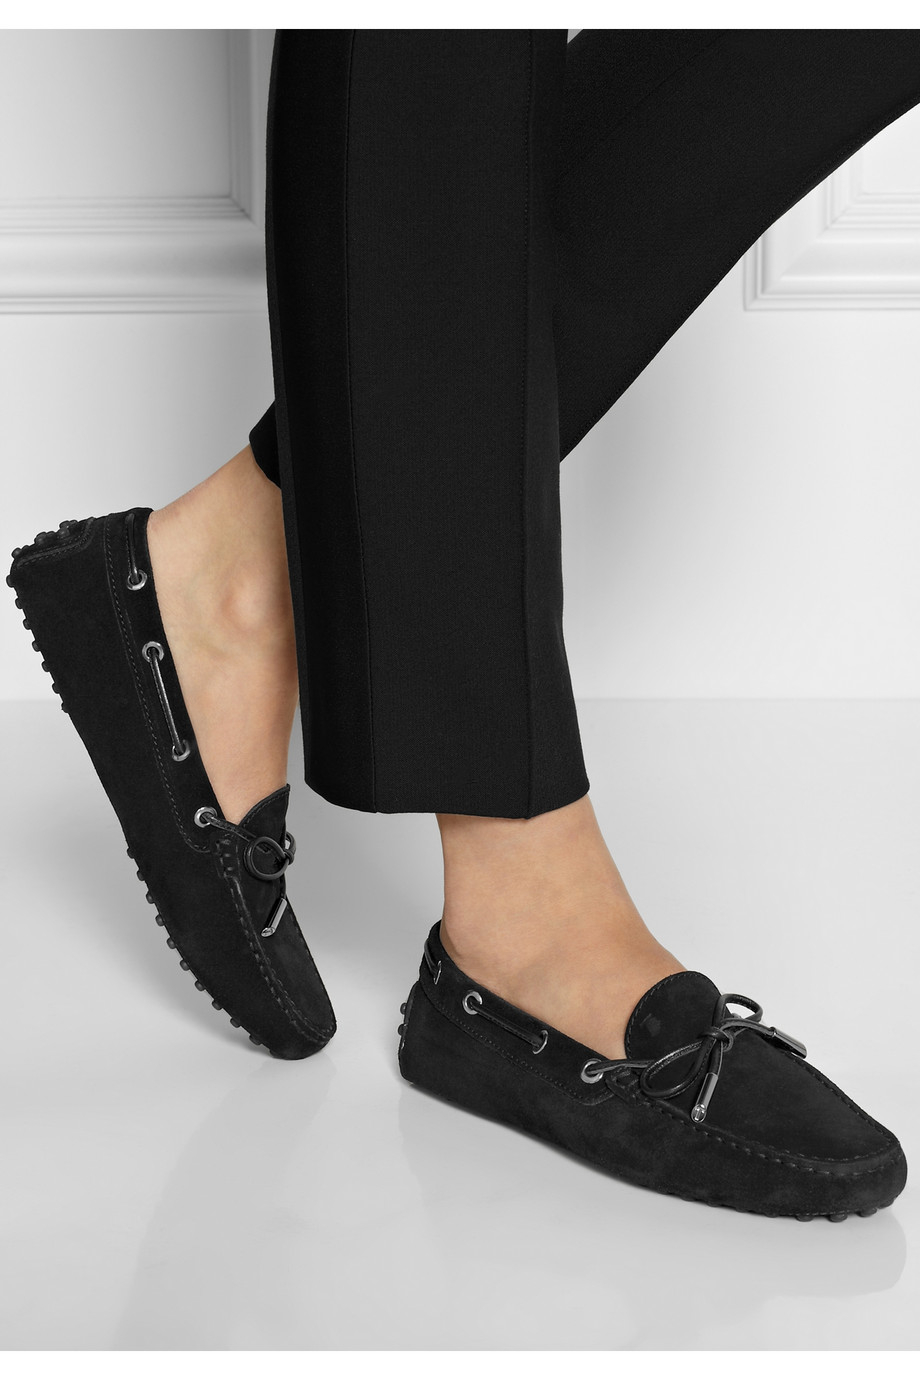 Tods Shoes Outlet | Tods Bracelet | Tods Loafers